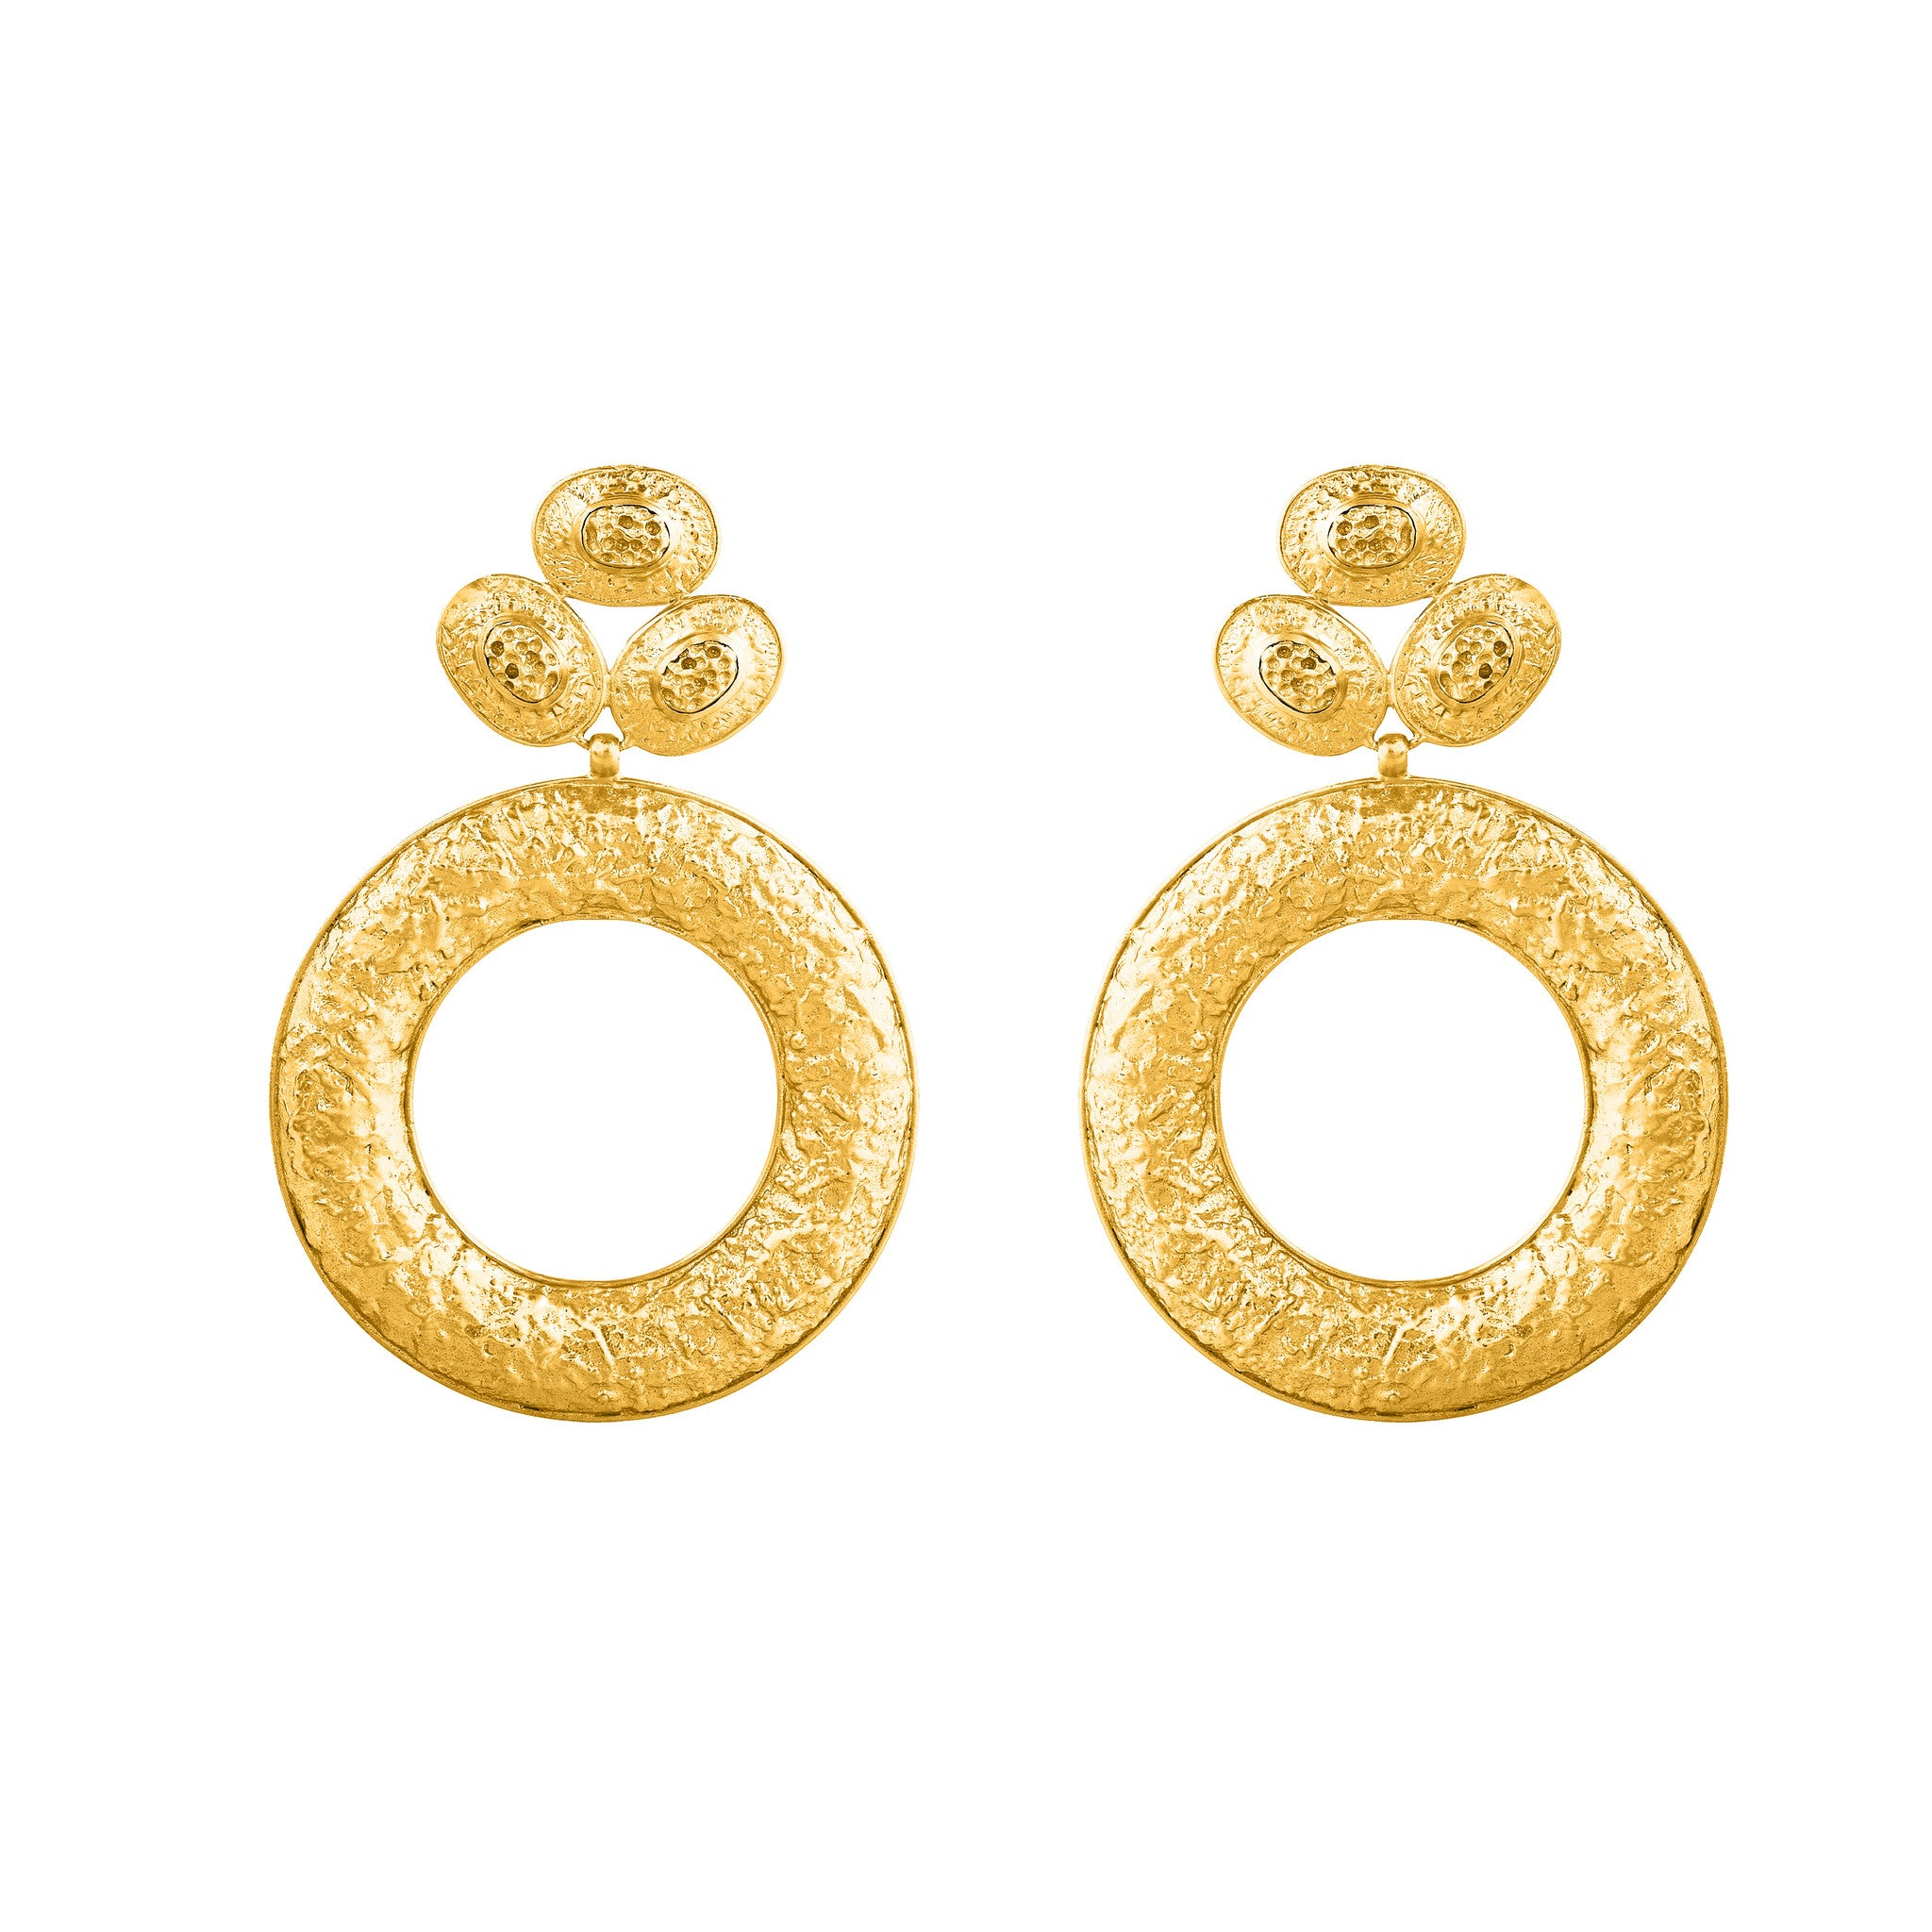 jeweller earrings category gold kolkata categories manik earing chand jewellery jadau mg product